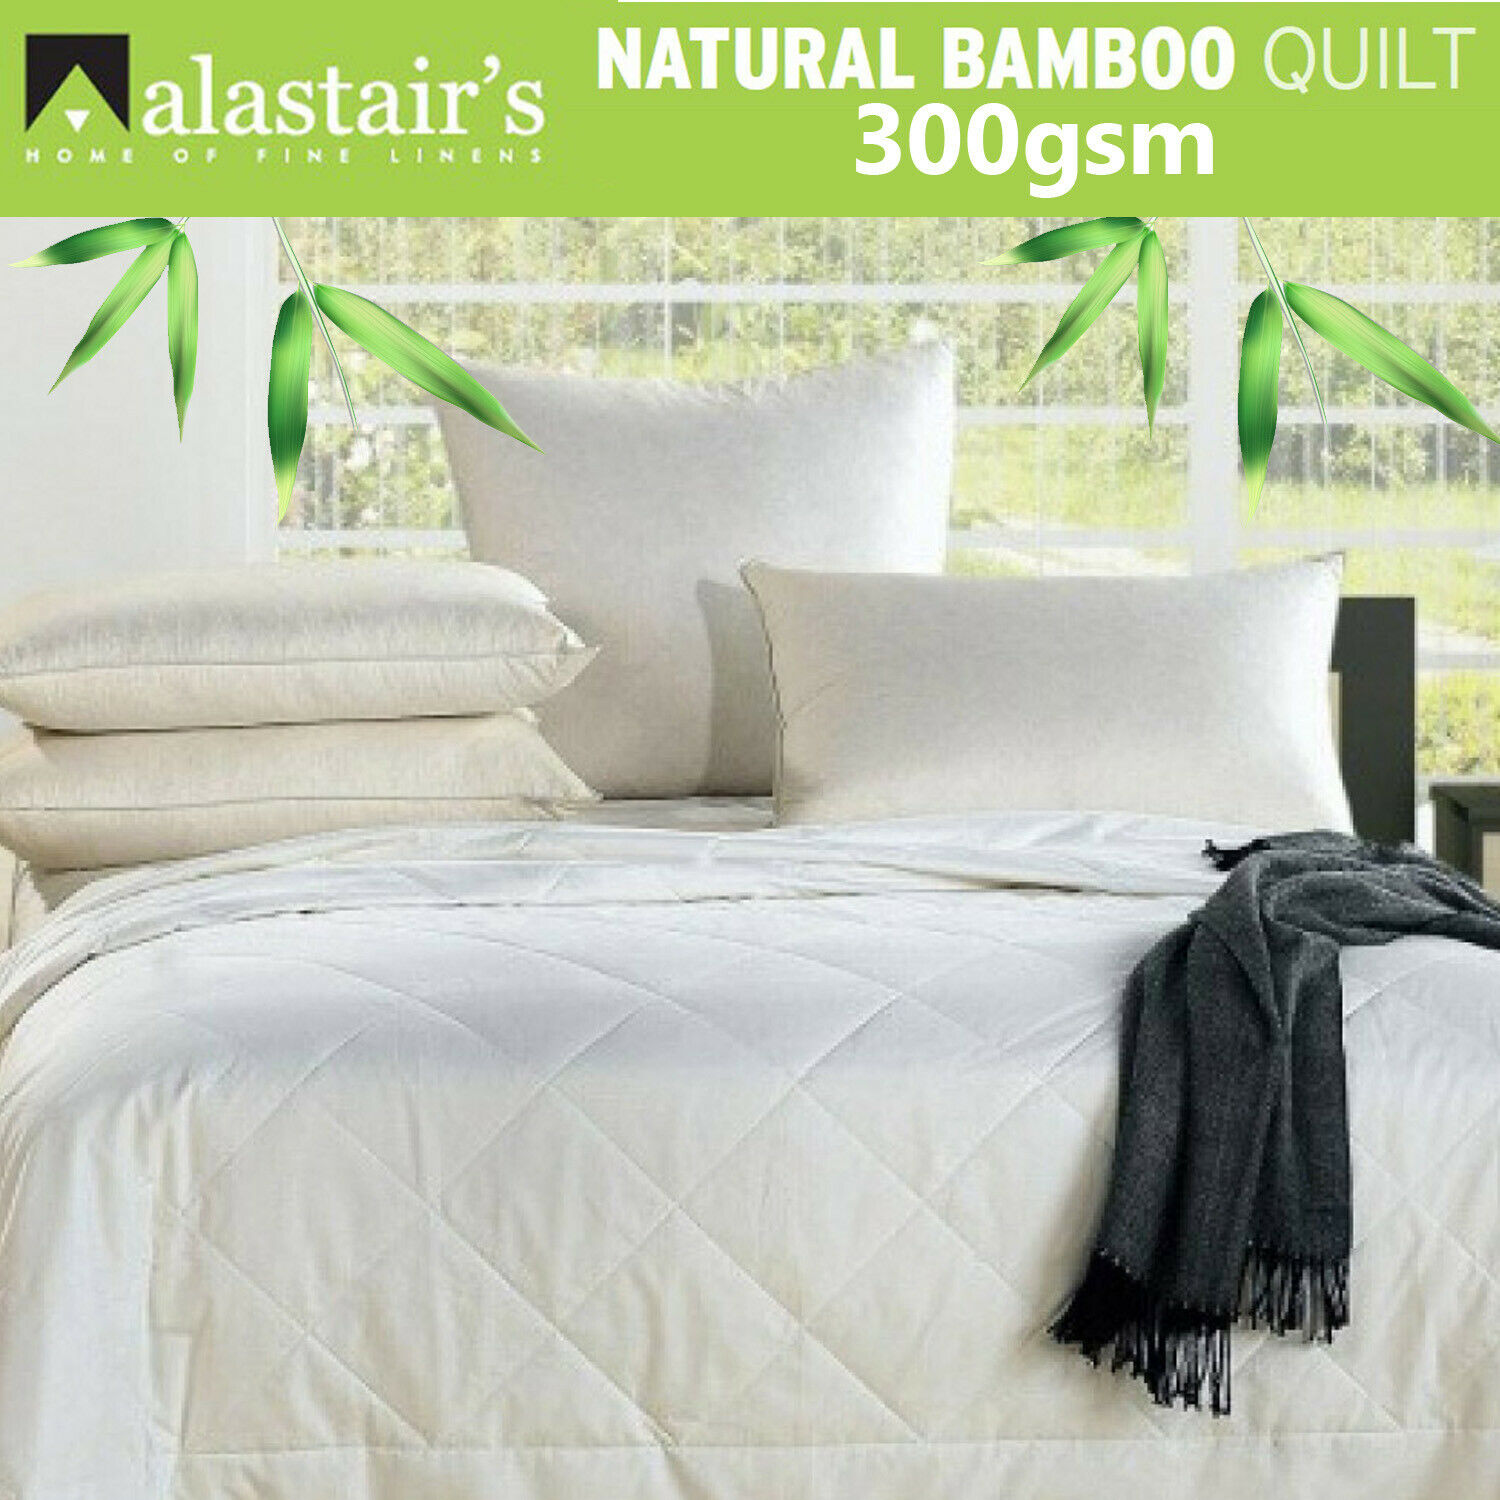 Alastair's Bamboo Quilt Will Duvet 300gsm   Eco Friendly   Chemical Free